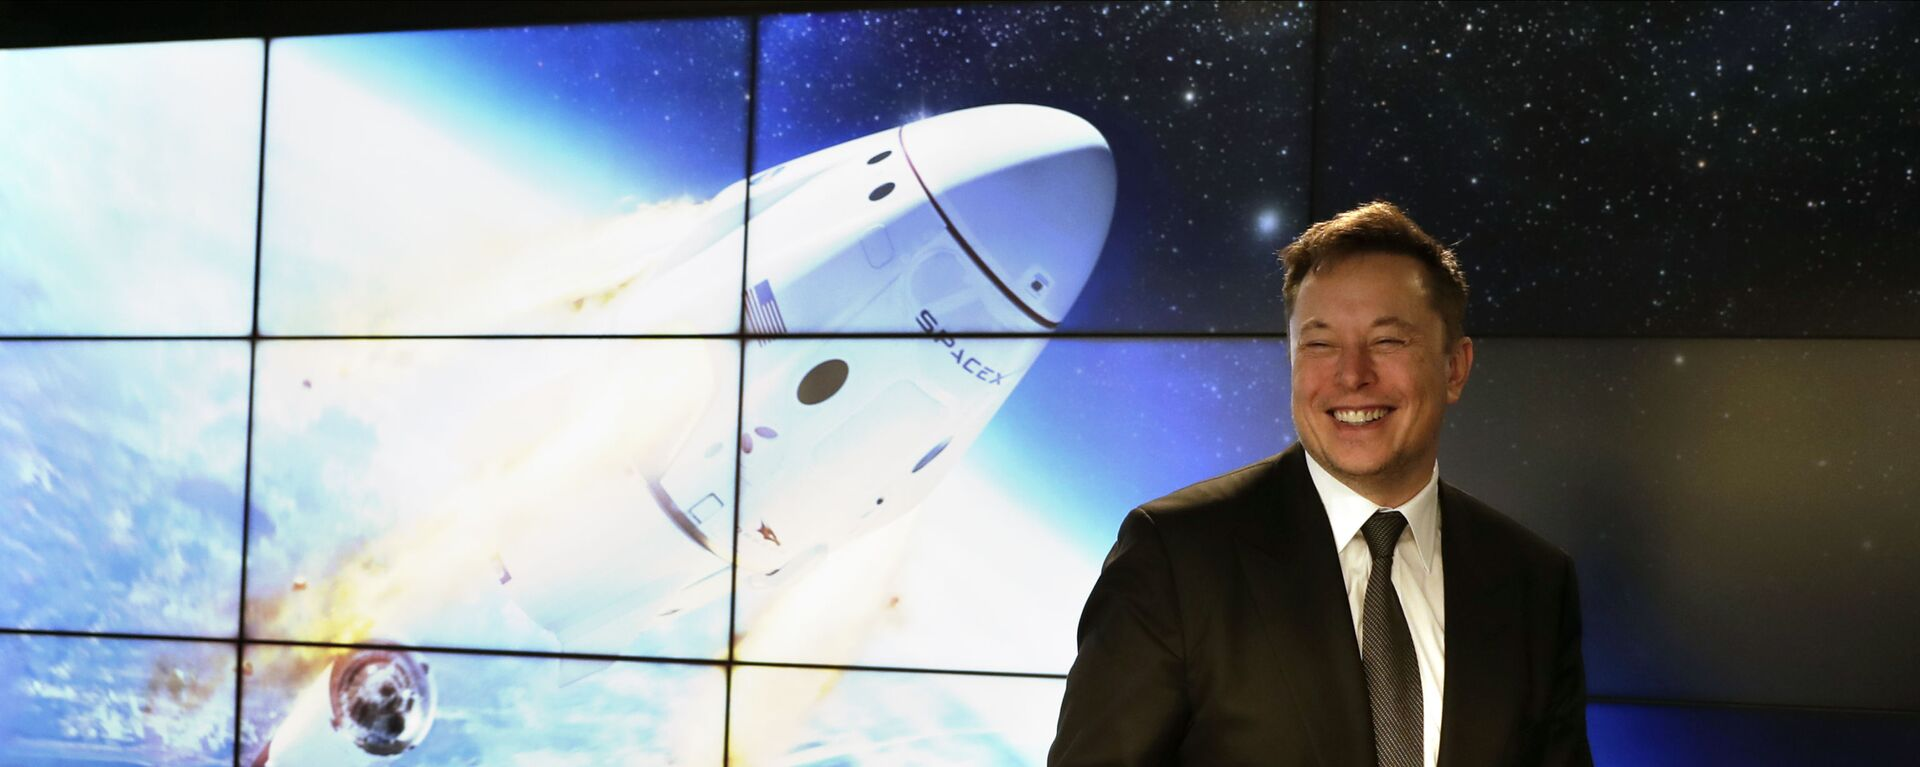 Elon Musk, founder, CEO, and chief engineer/designer of SpaceX speaks during a news conference after a Falcon 9 SpaceX rocket test flight to demonstrate the capsule's emergency escape system at the Kennedy Space Center in Cape Canaveral, Fla., Sunday, Jan. 19, 2020 - Sputnik Italia, 1920, 11.08.2021